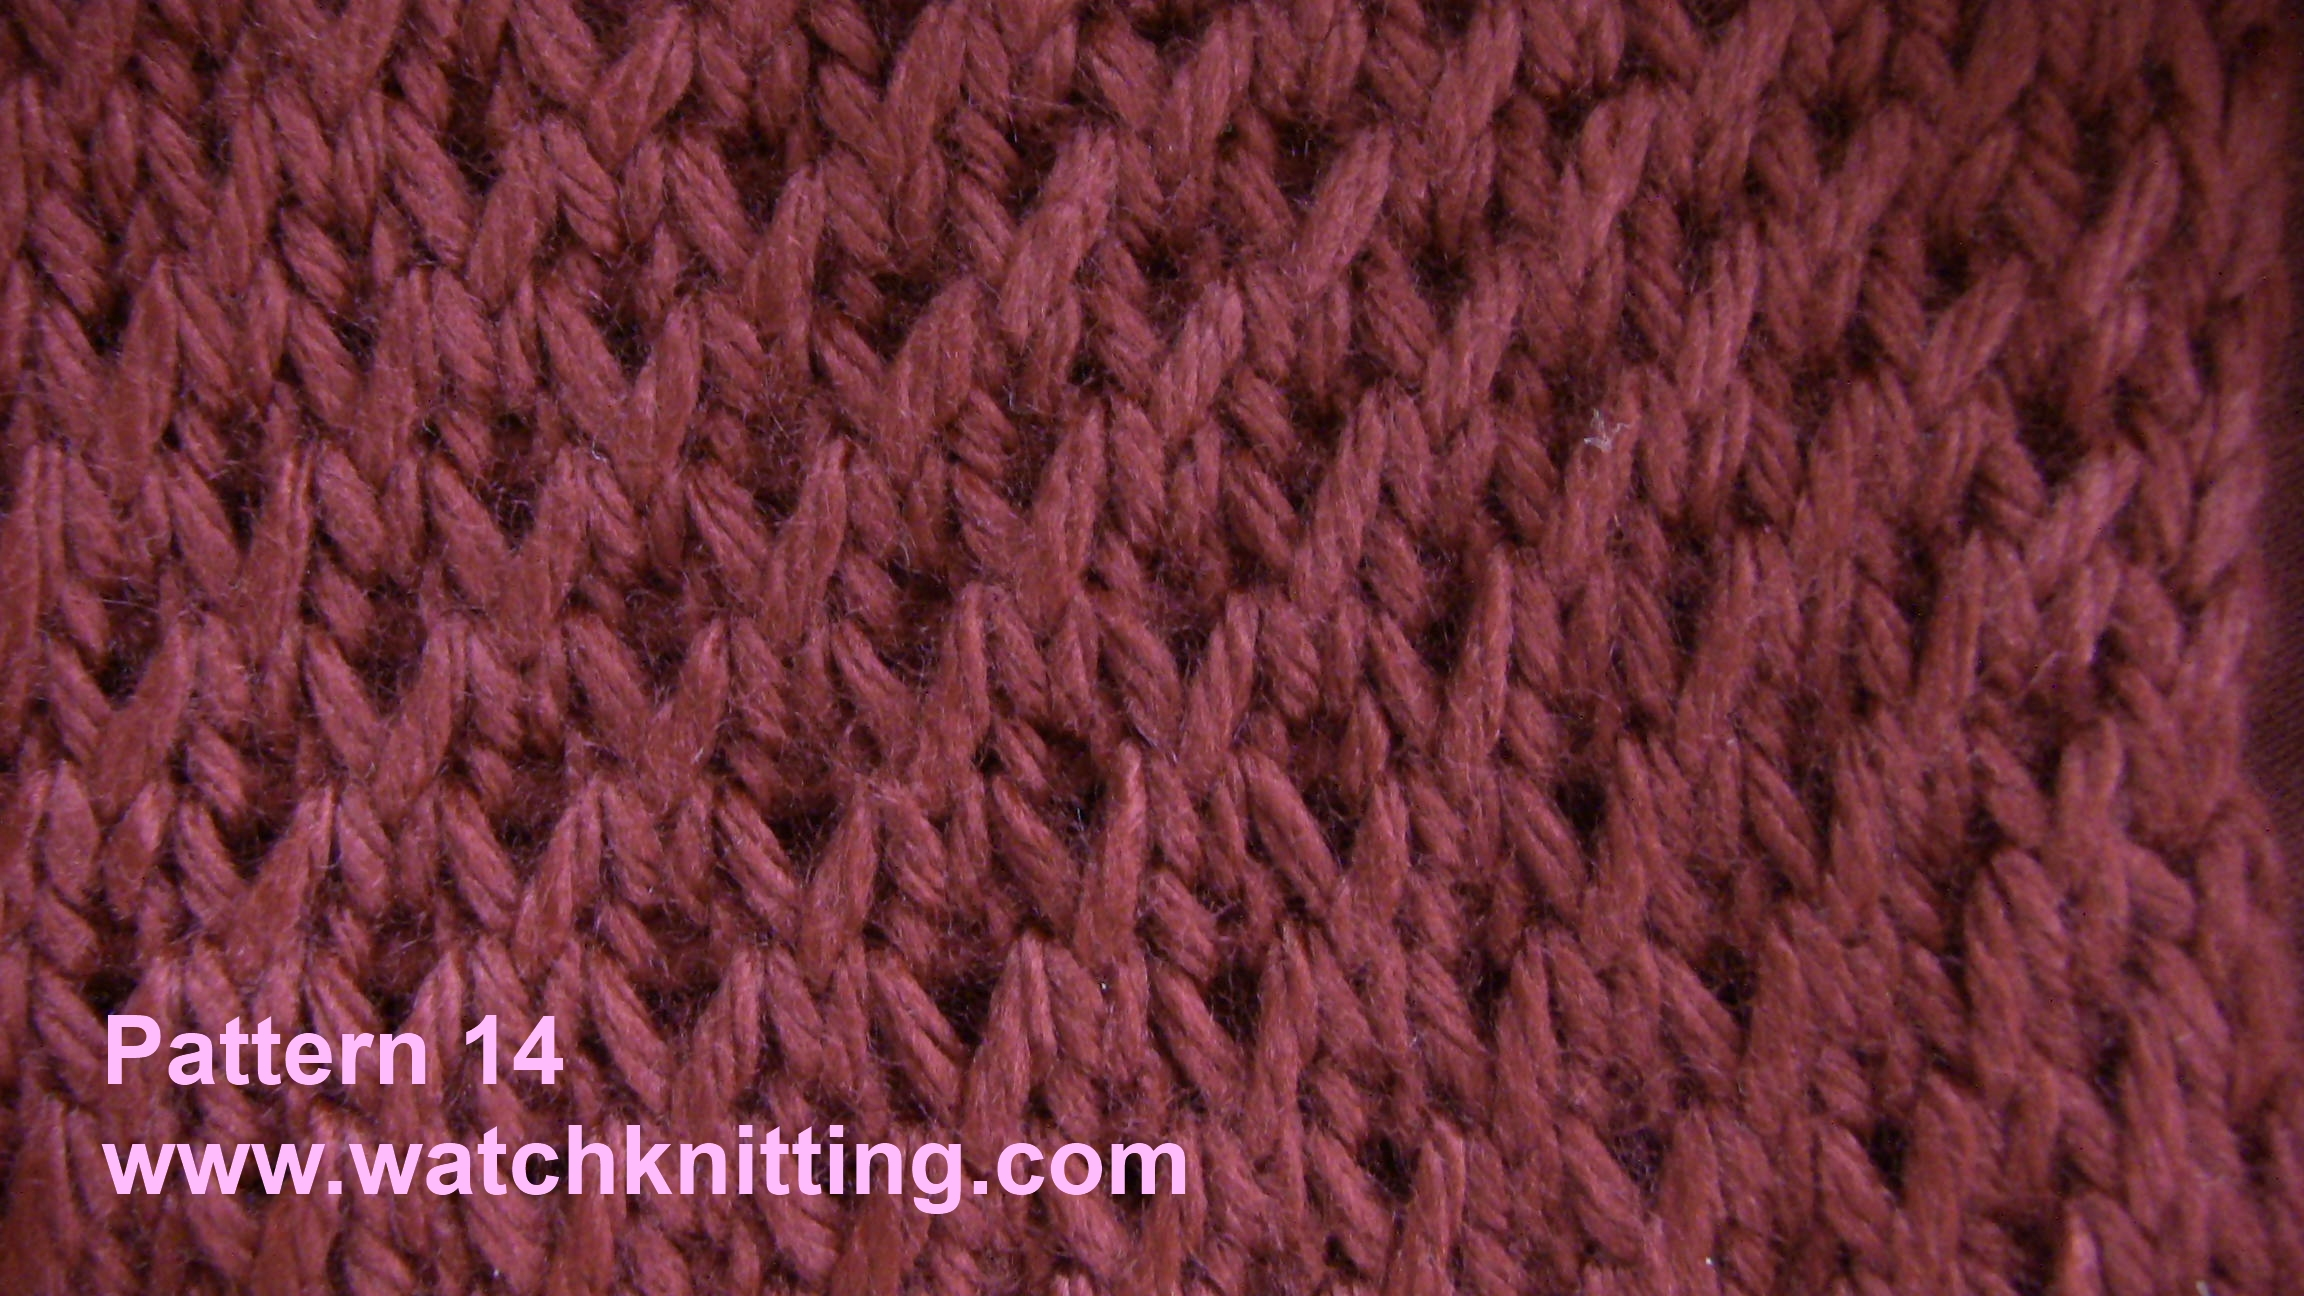 Posts by Fariba Zahed Watch knitting - Page 2